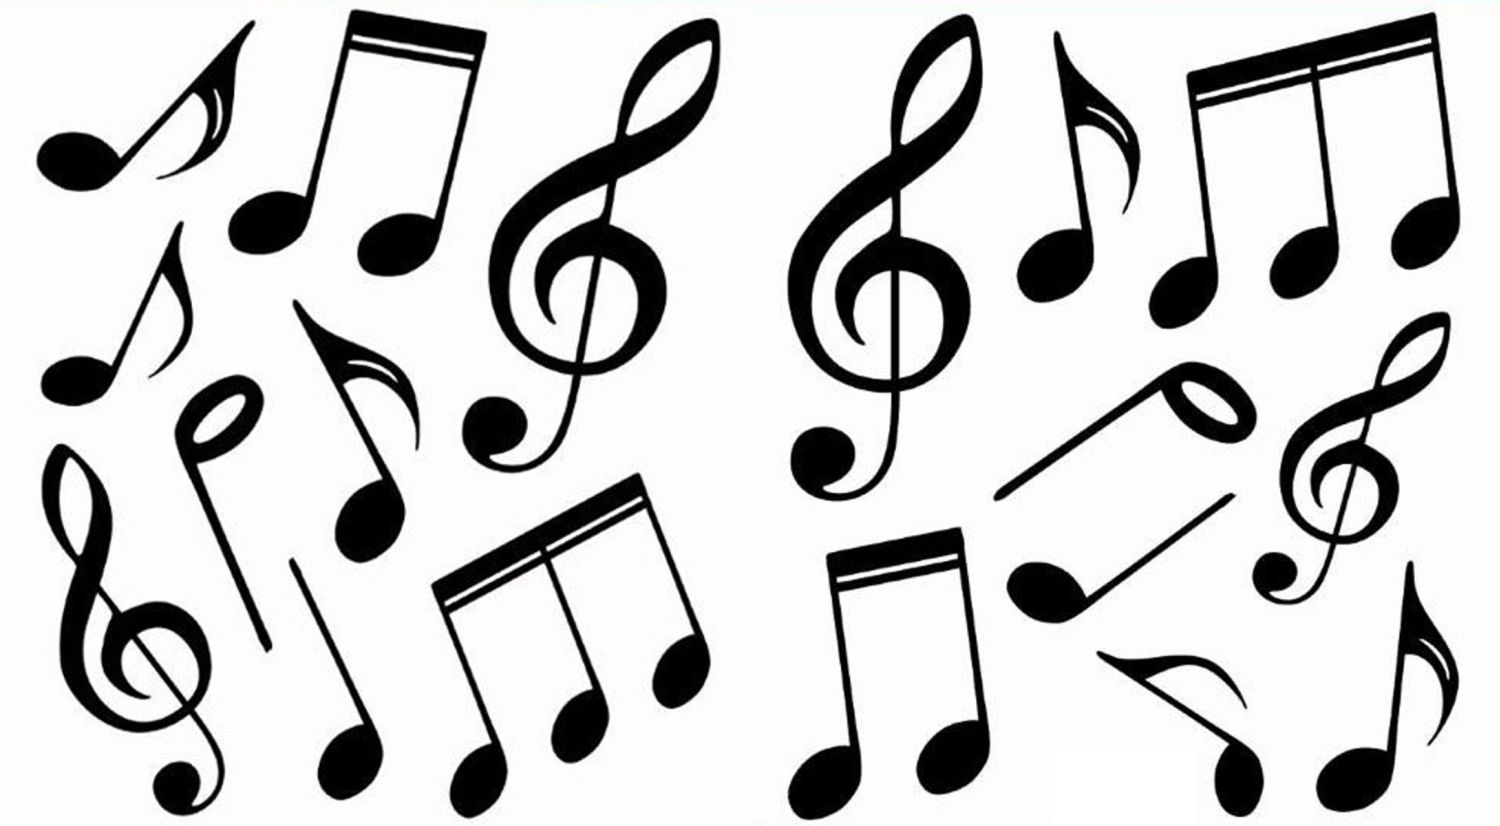 Free Musical Notes Download Free Clip Art Free Clip Art On Clipart Library